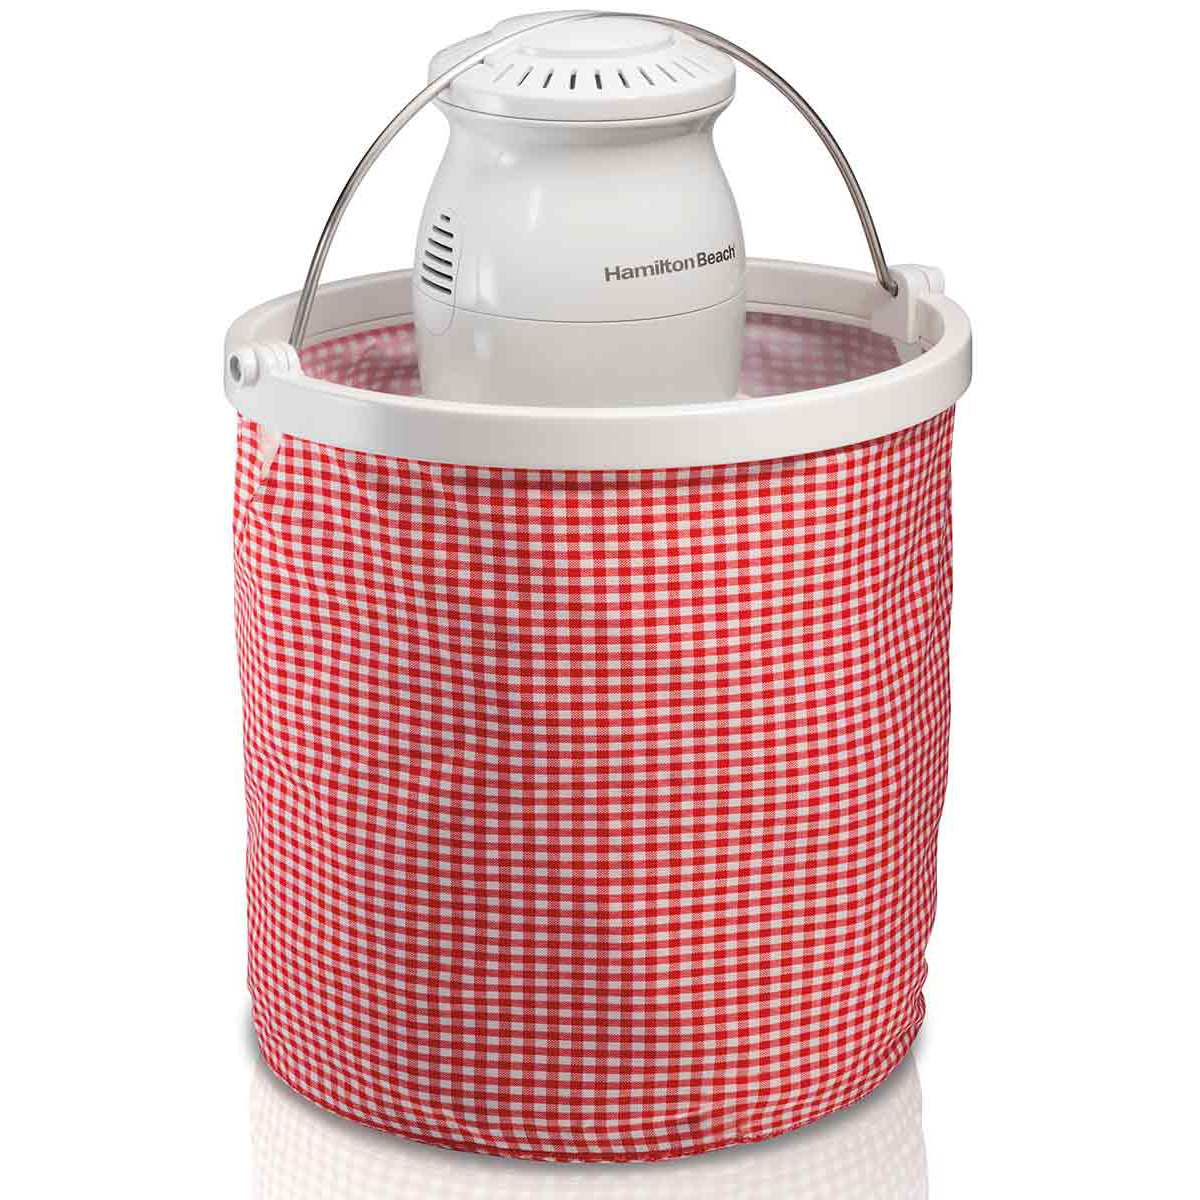 4 Quart Collapsible Bucket Ice Cream Maker (68990)